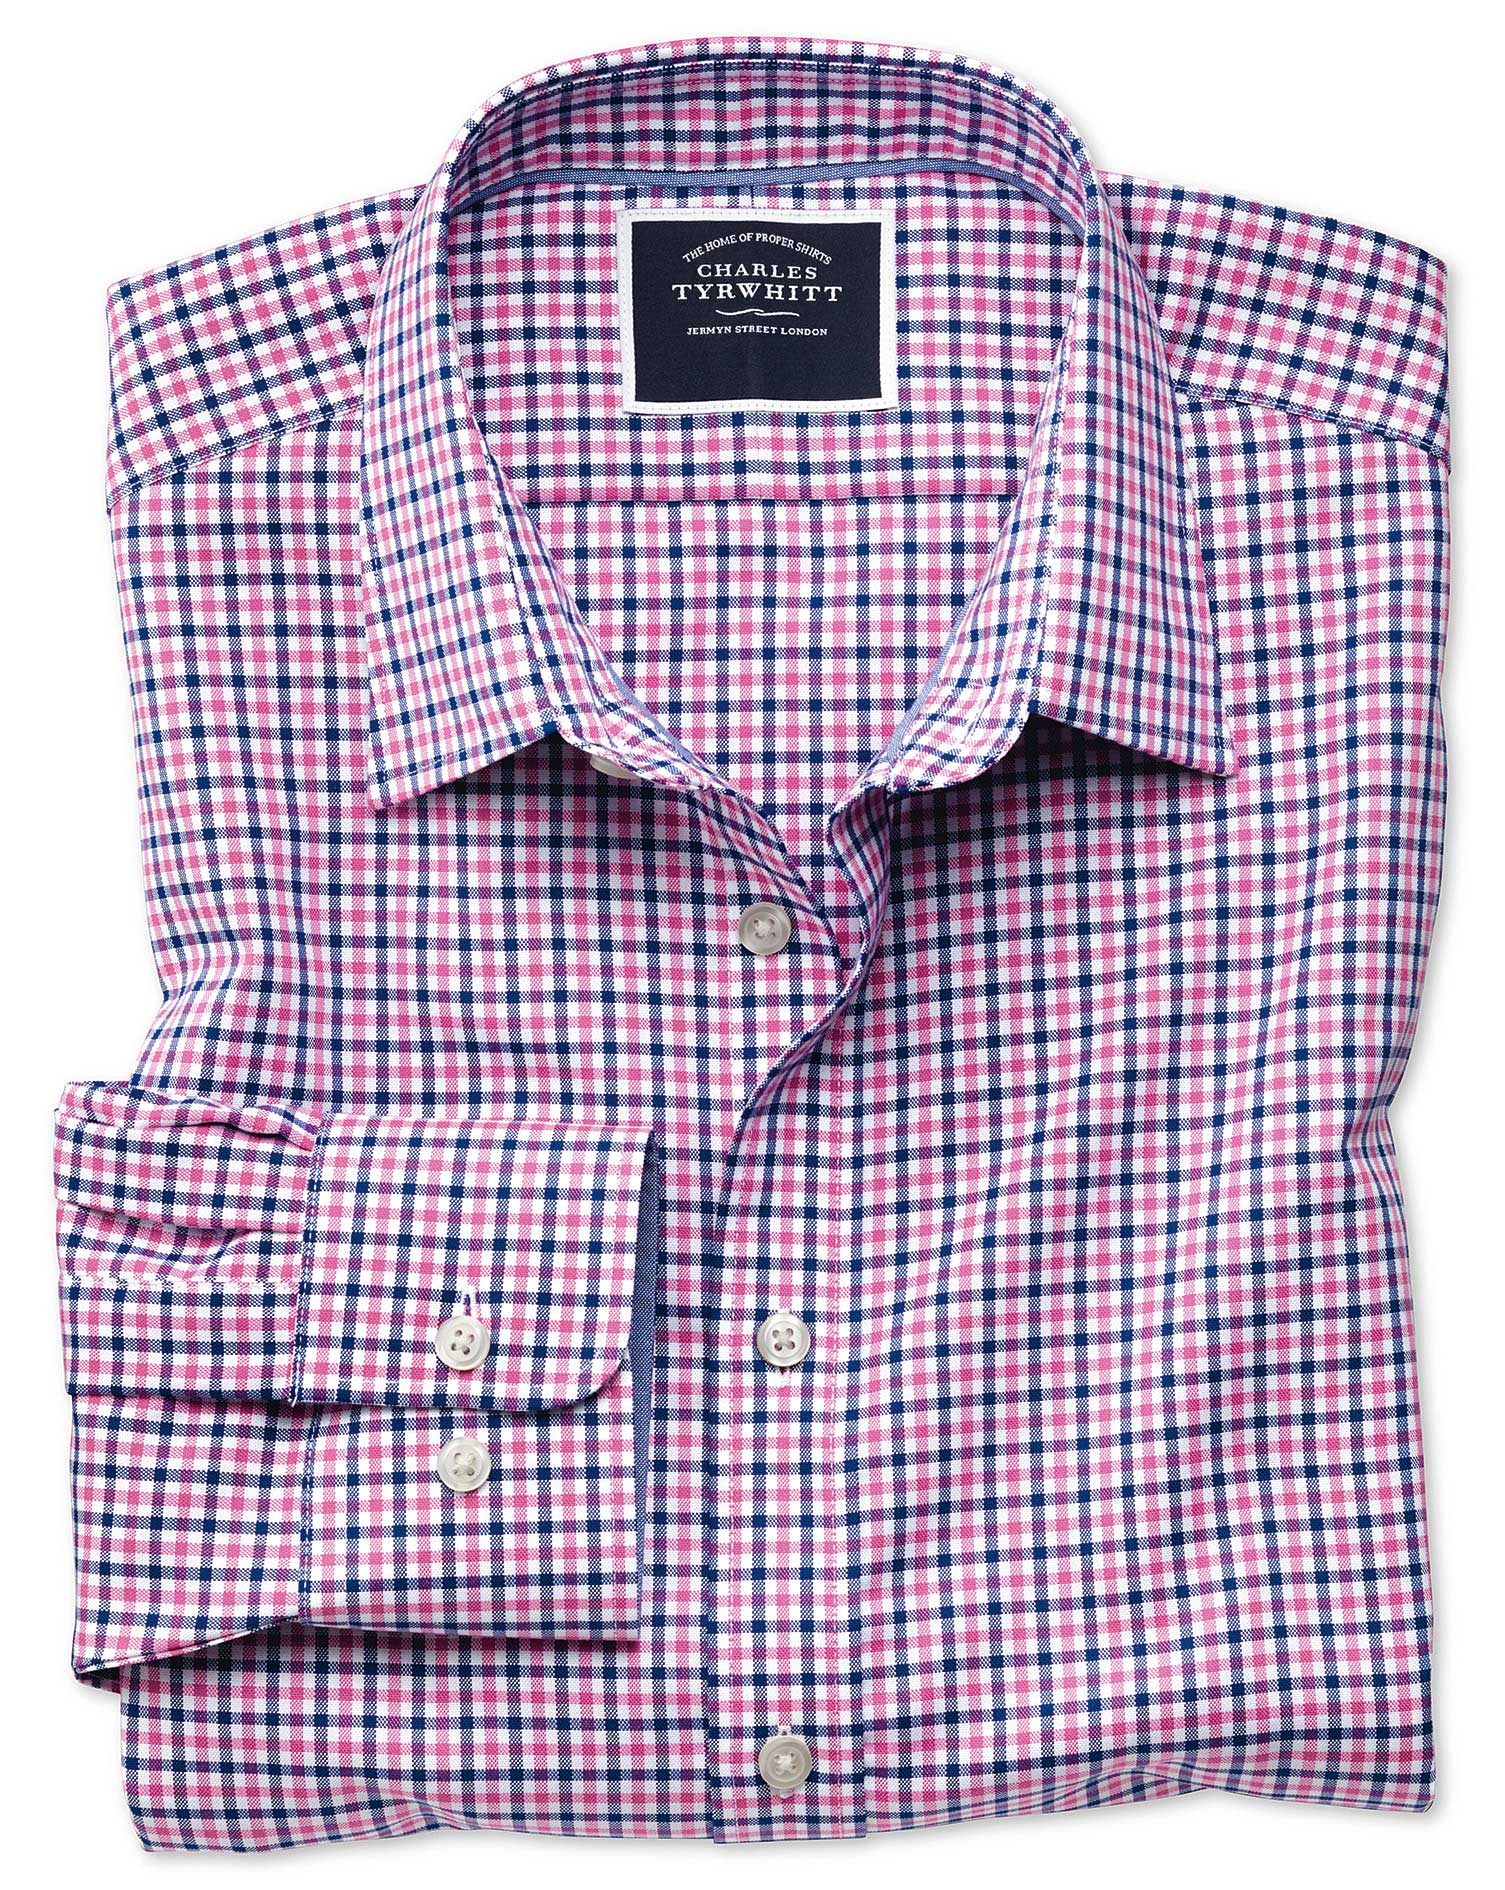 Extra Slim Fit Non-Iron Pink and Navy Gingham Oxford Cotton Shirt Single Cuff Size XXL by Charles Ty